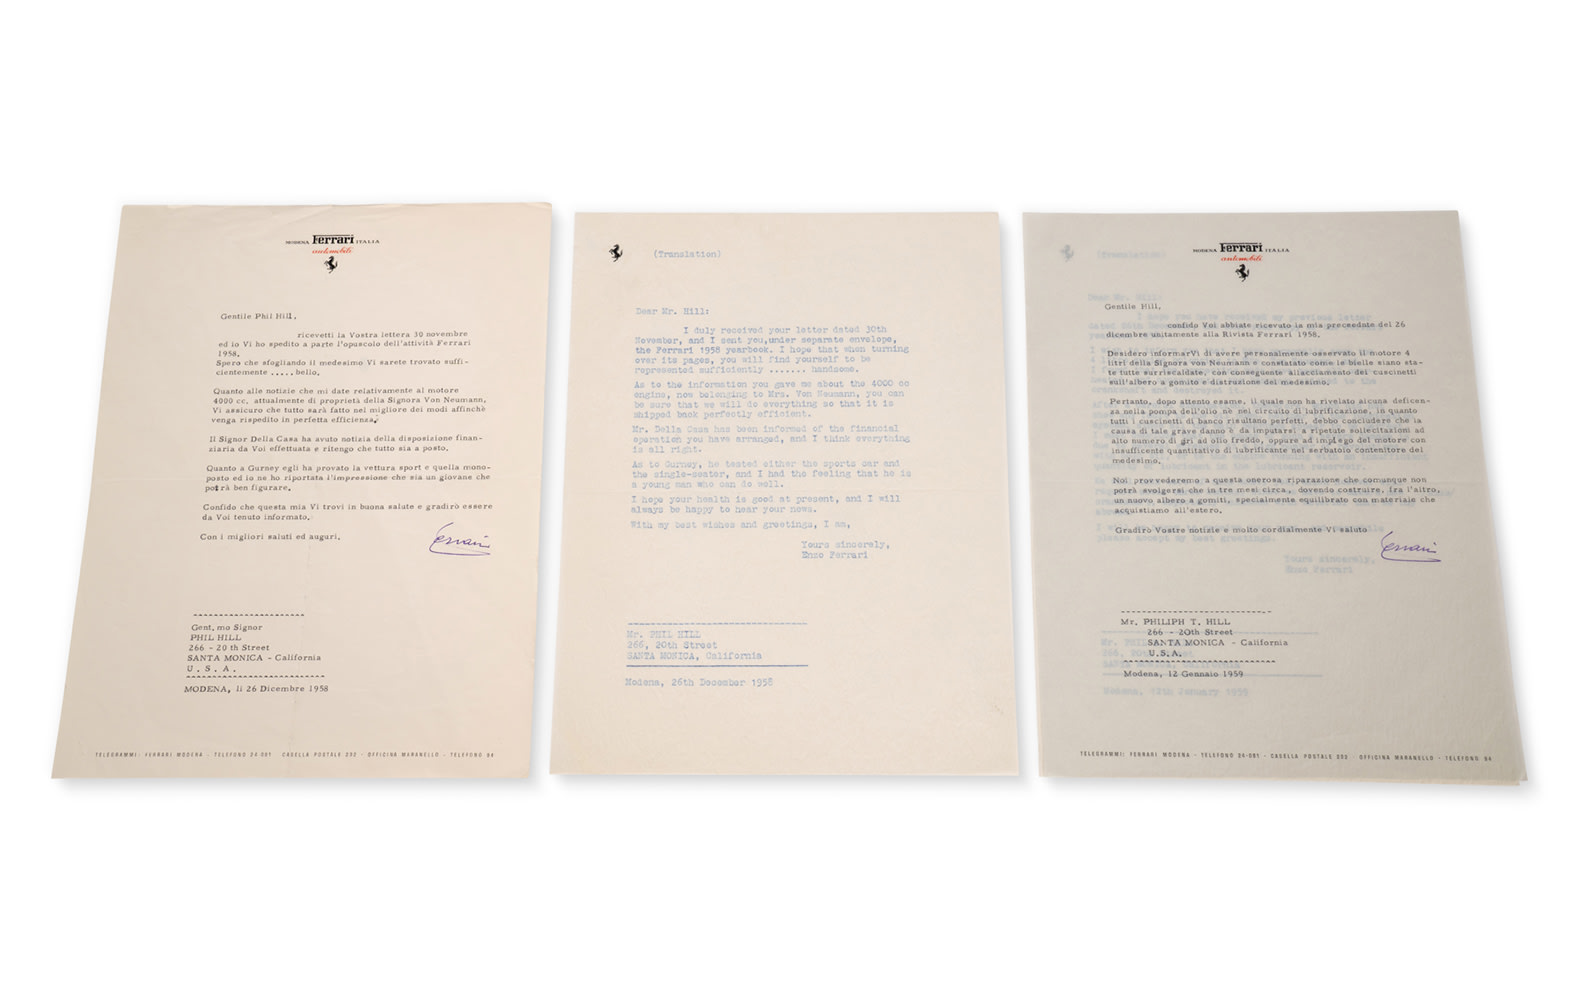 Two Letters from Enzo Ferrari to Phil Hill Regarding the 412 MI Engine